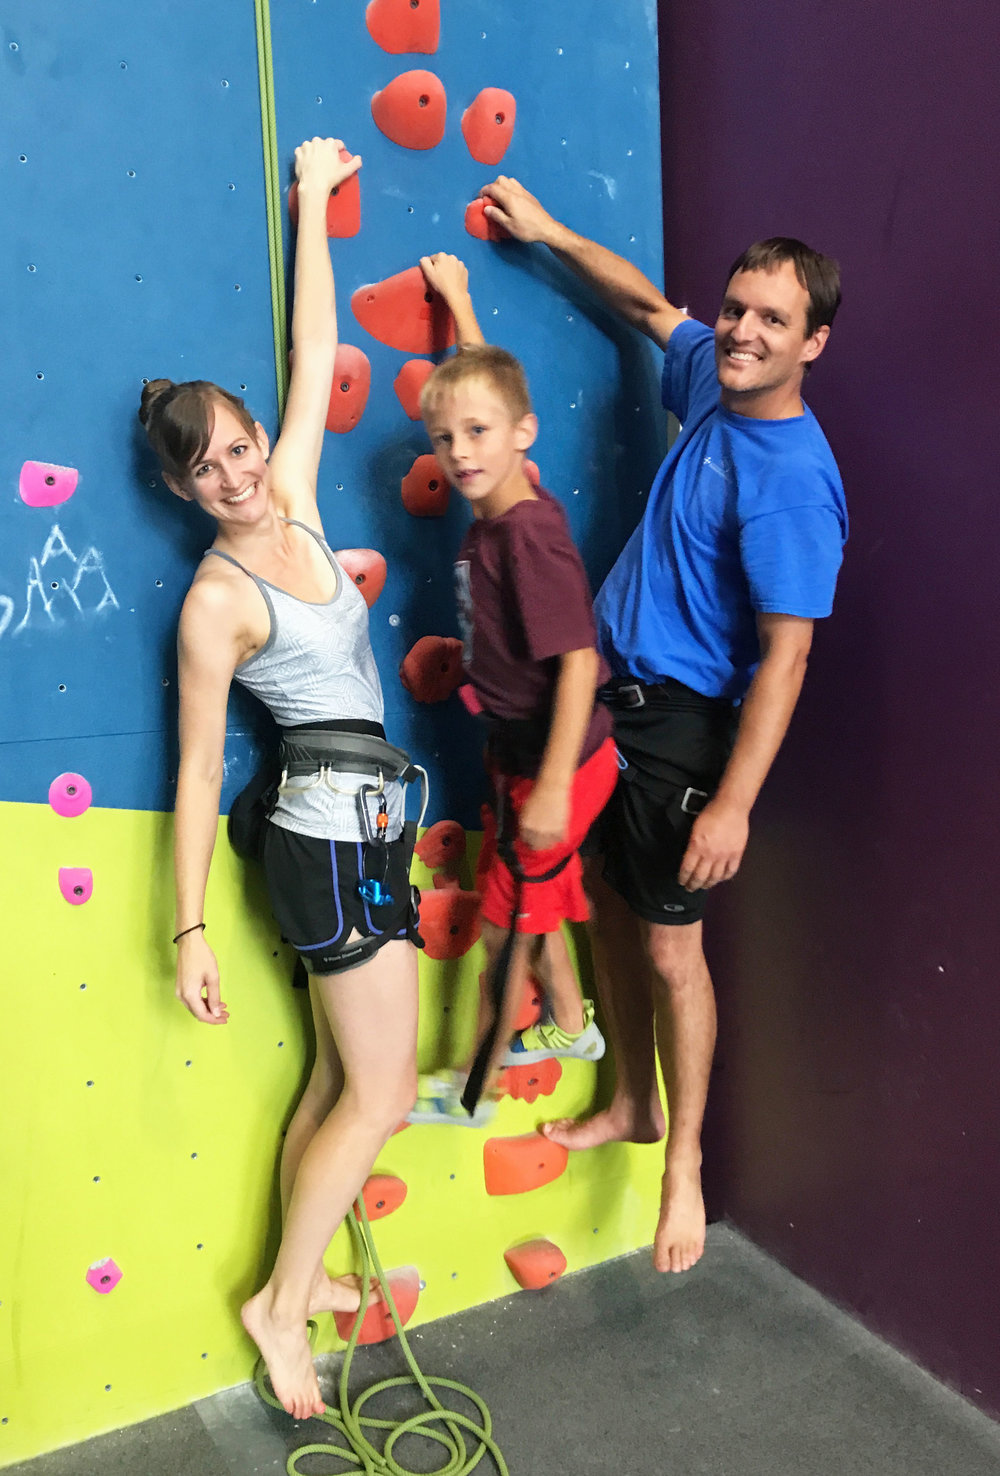 Rock climbing with my favorite guys <3